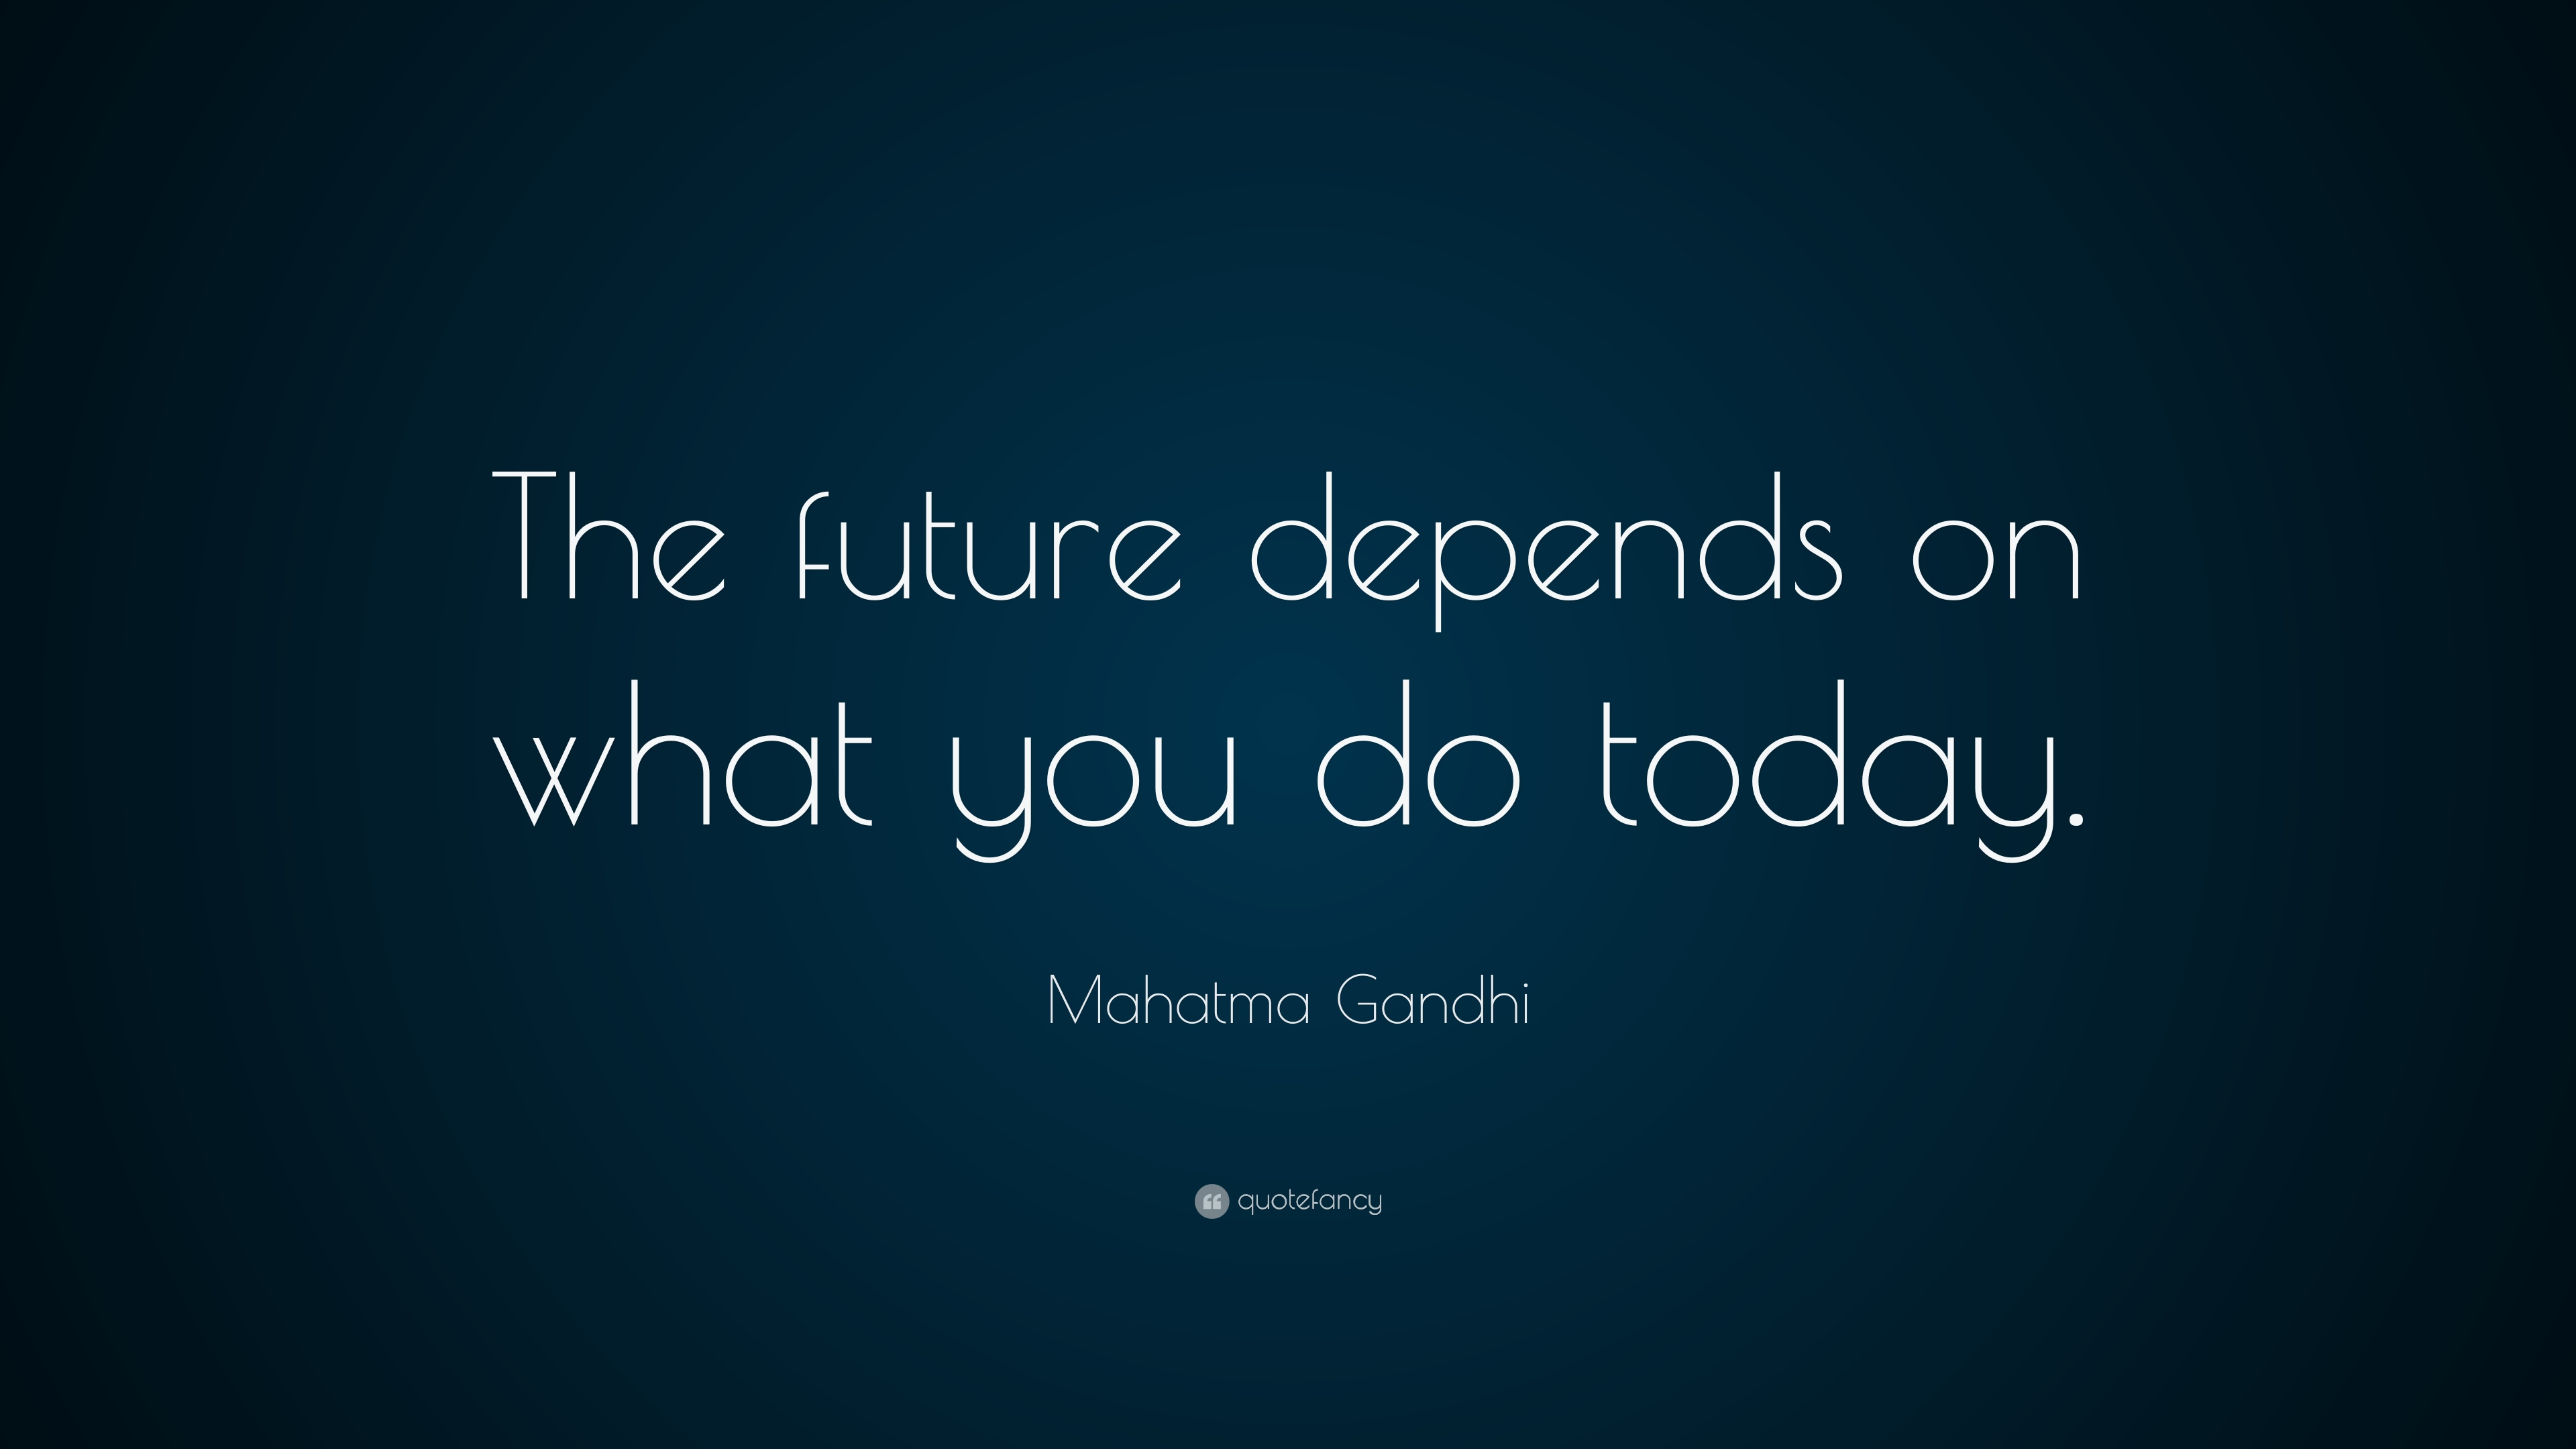 Bill Gates Quotes On Success Wallpaper Mahatma Gandhi Quote The Future Depends On What You Do